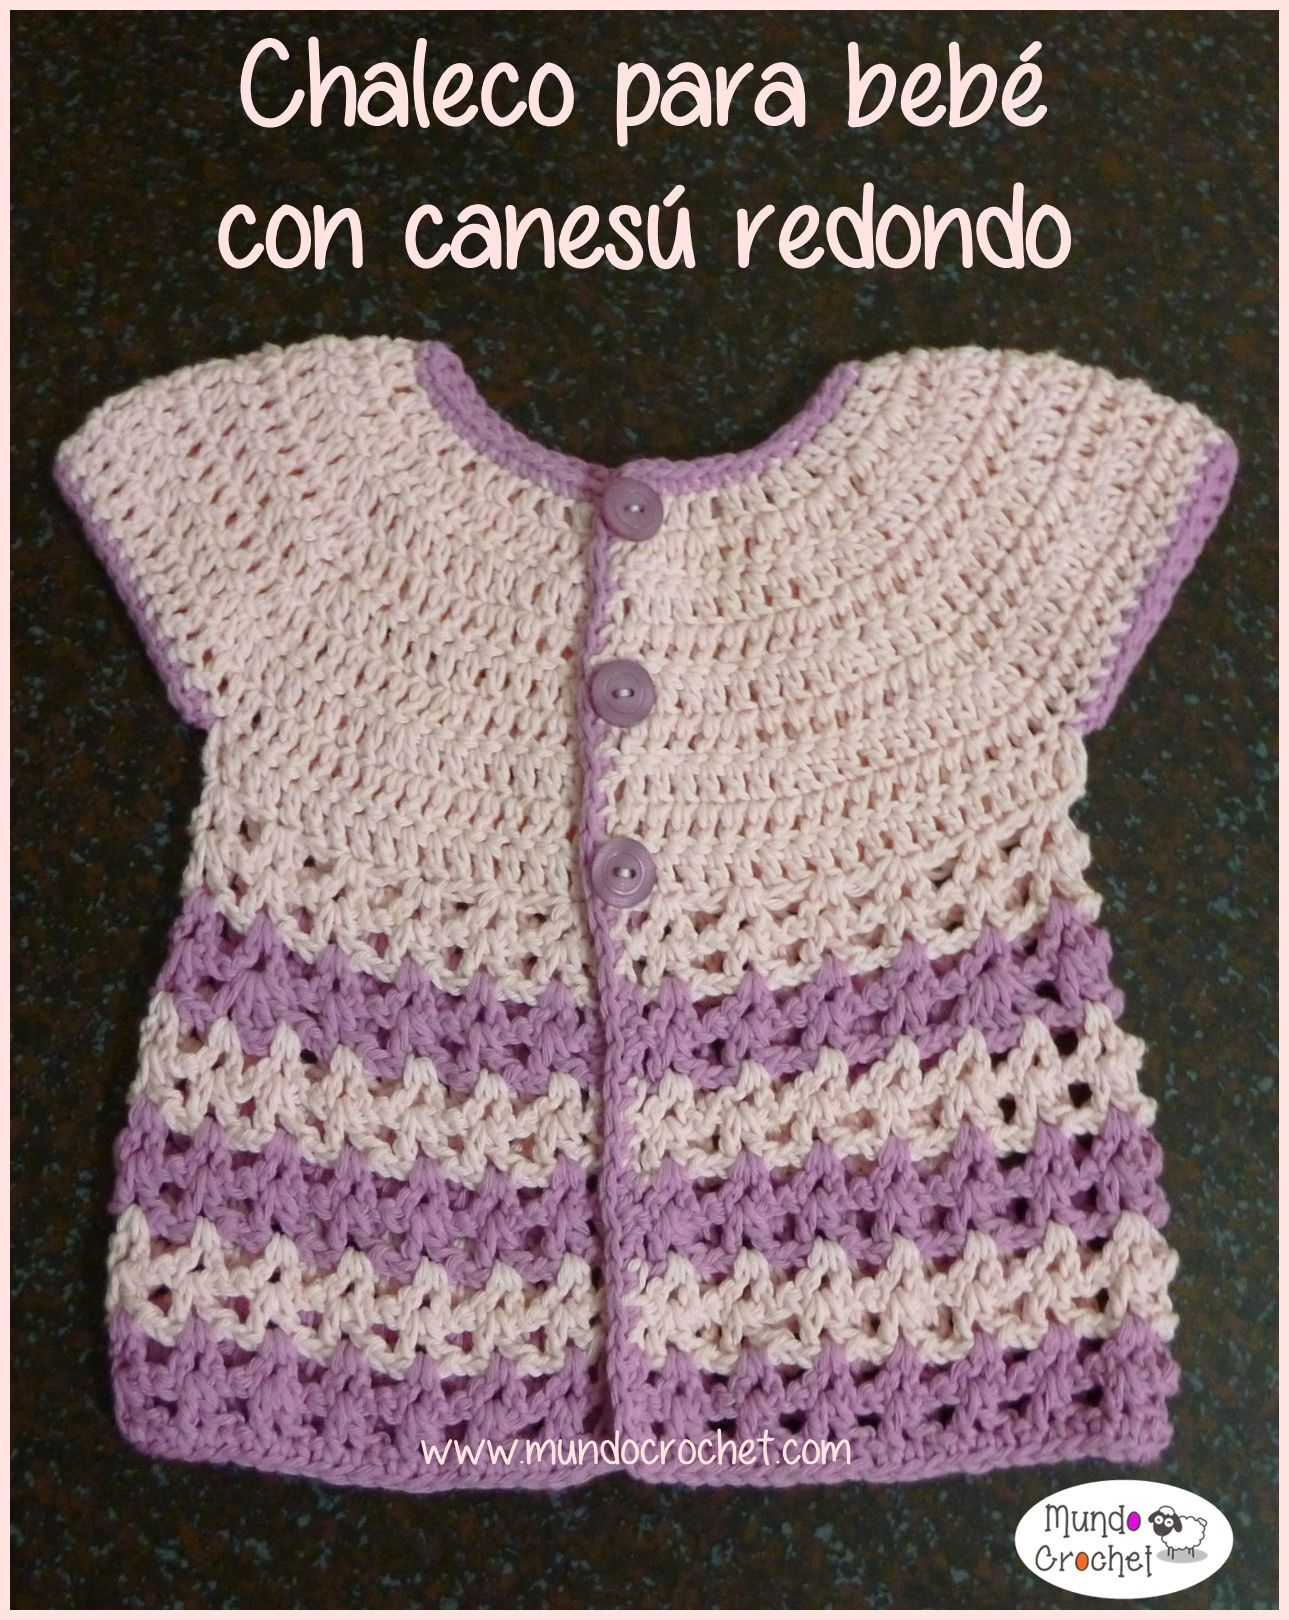 Round yoke baby crochet cardigan free pattern and tutorial | Crafts ...